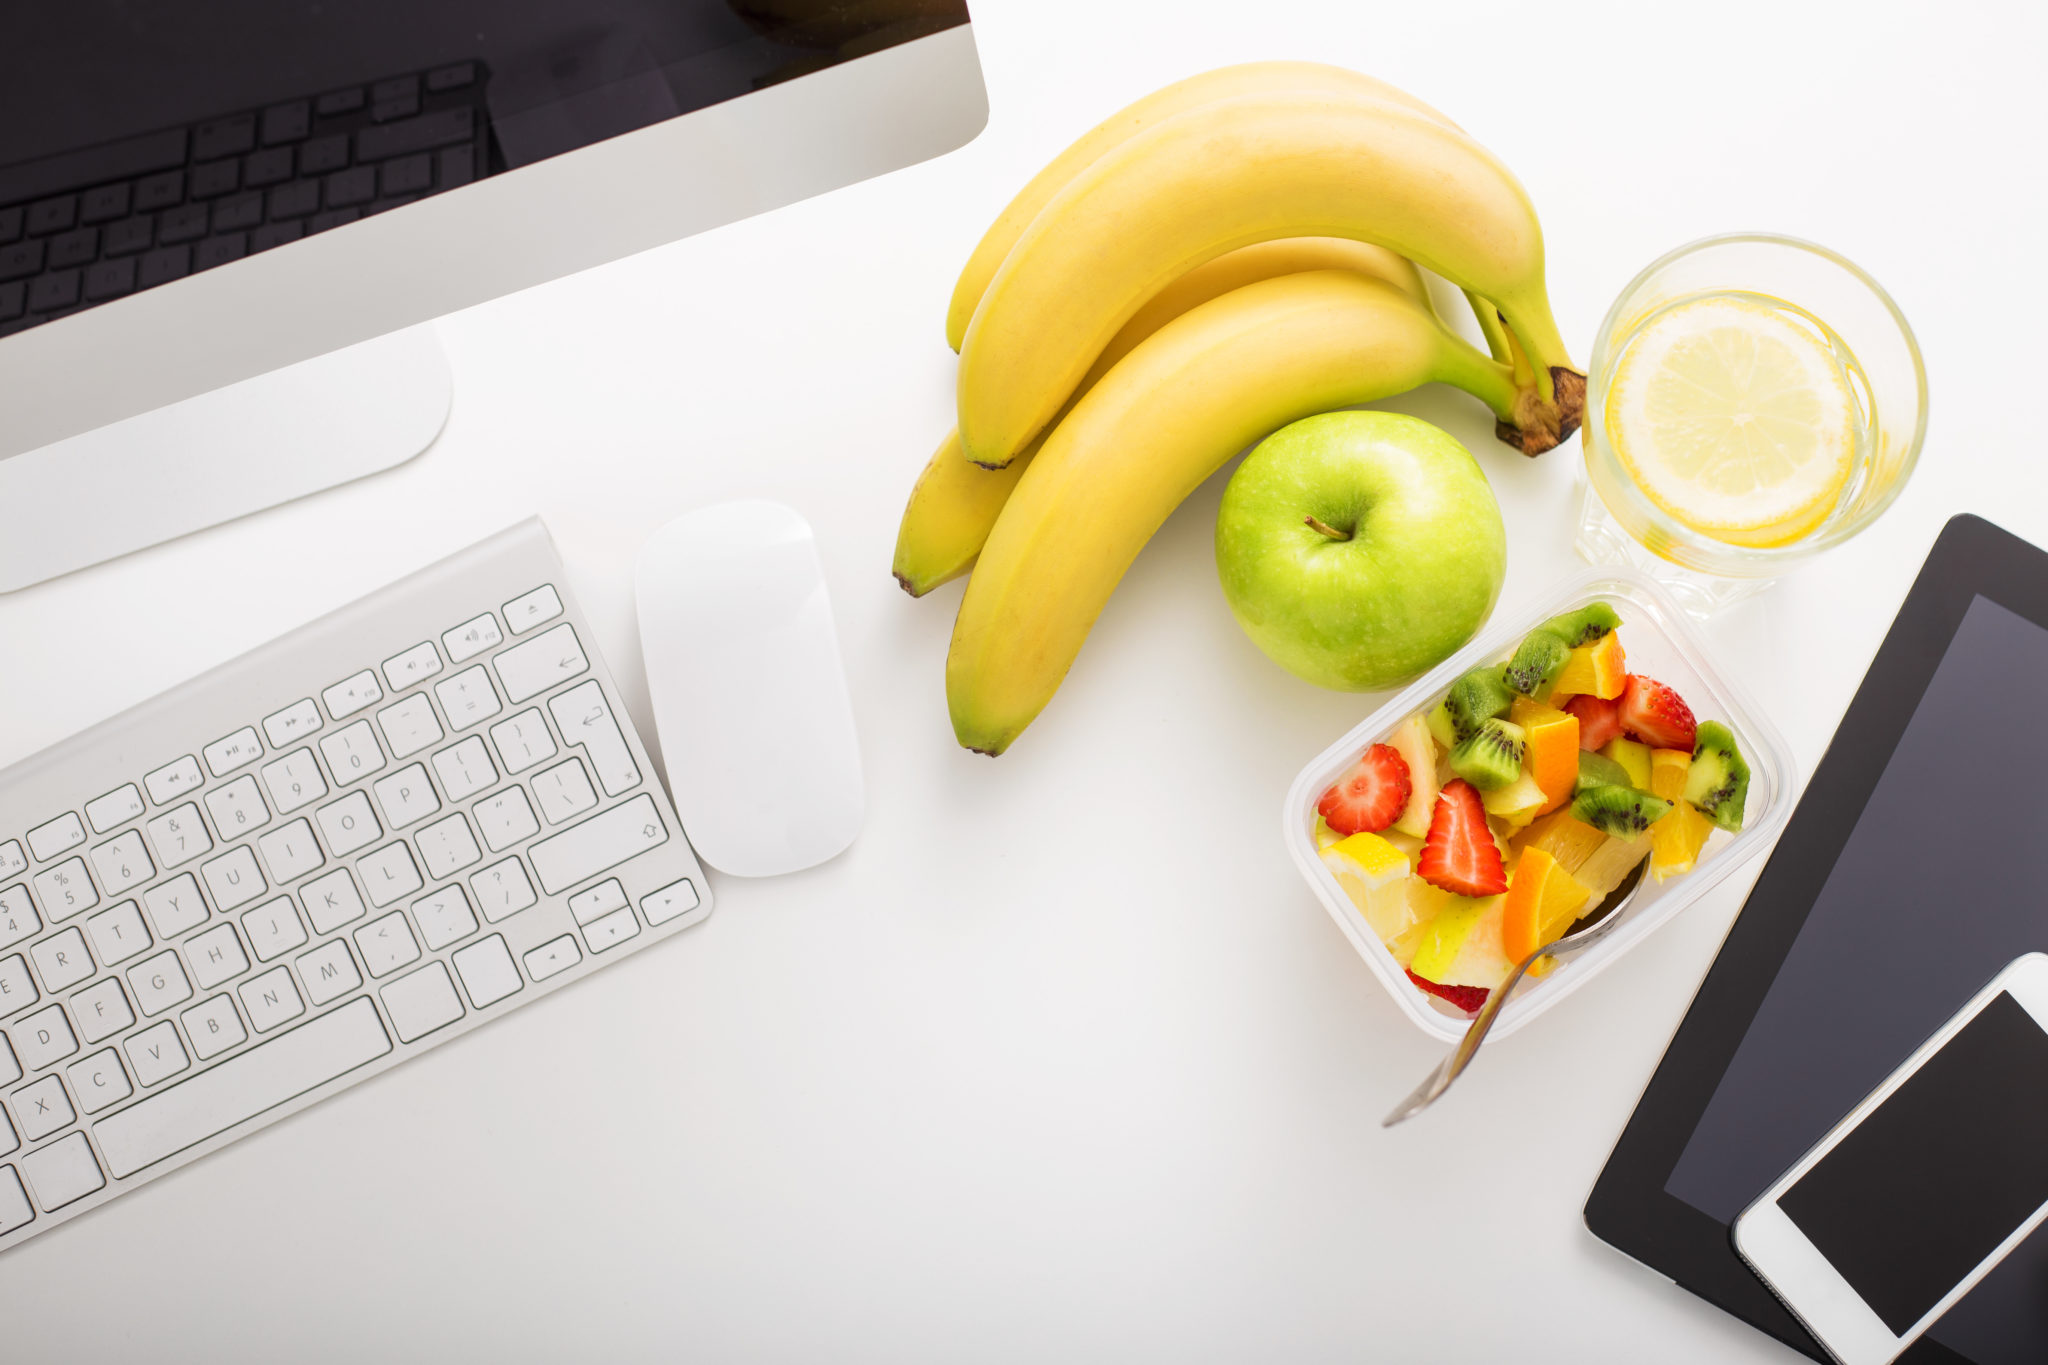 Close up of healthy food (banana, apple, fruit salad, and juice) on a work desk next to a desktop computer, tablet device, and cellphone